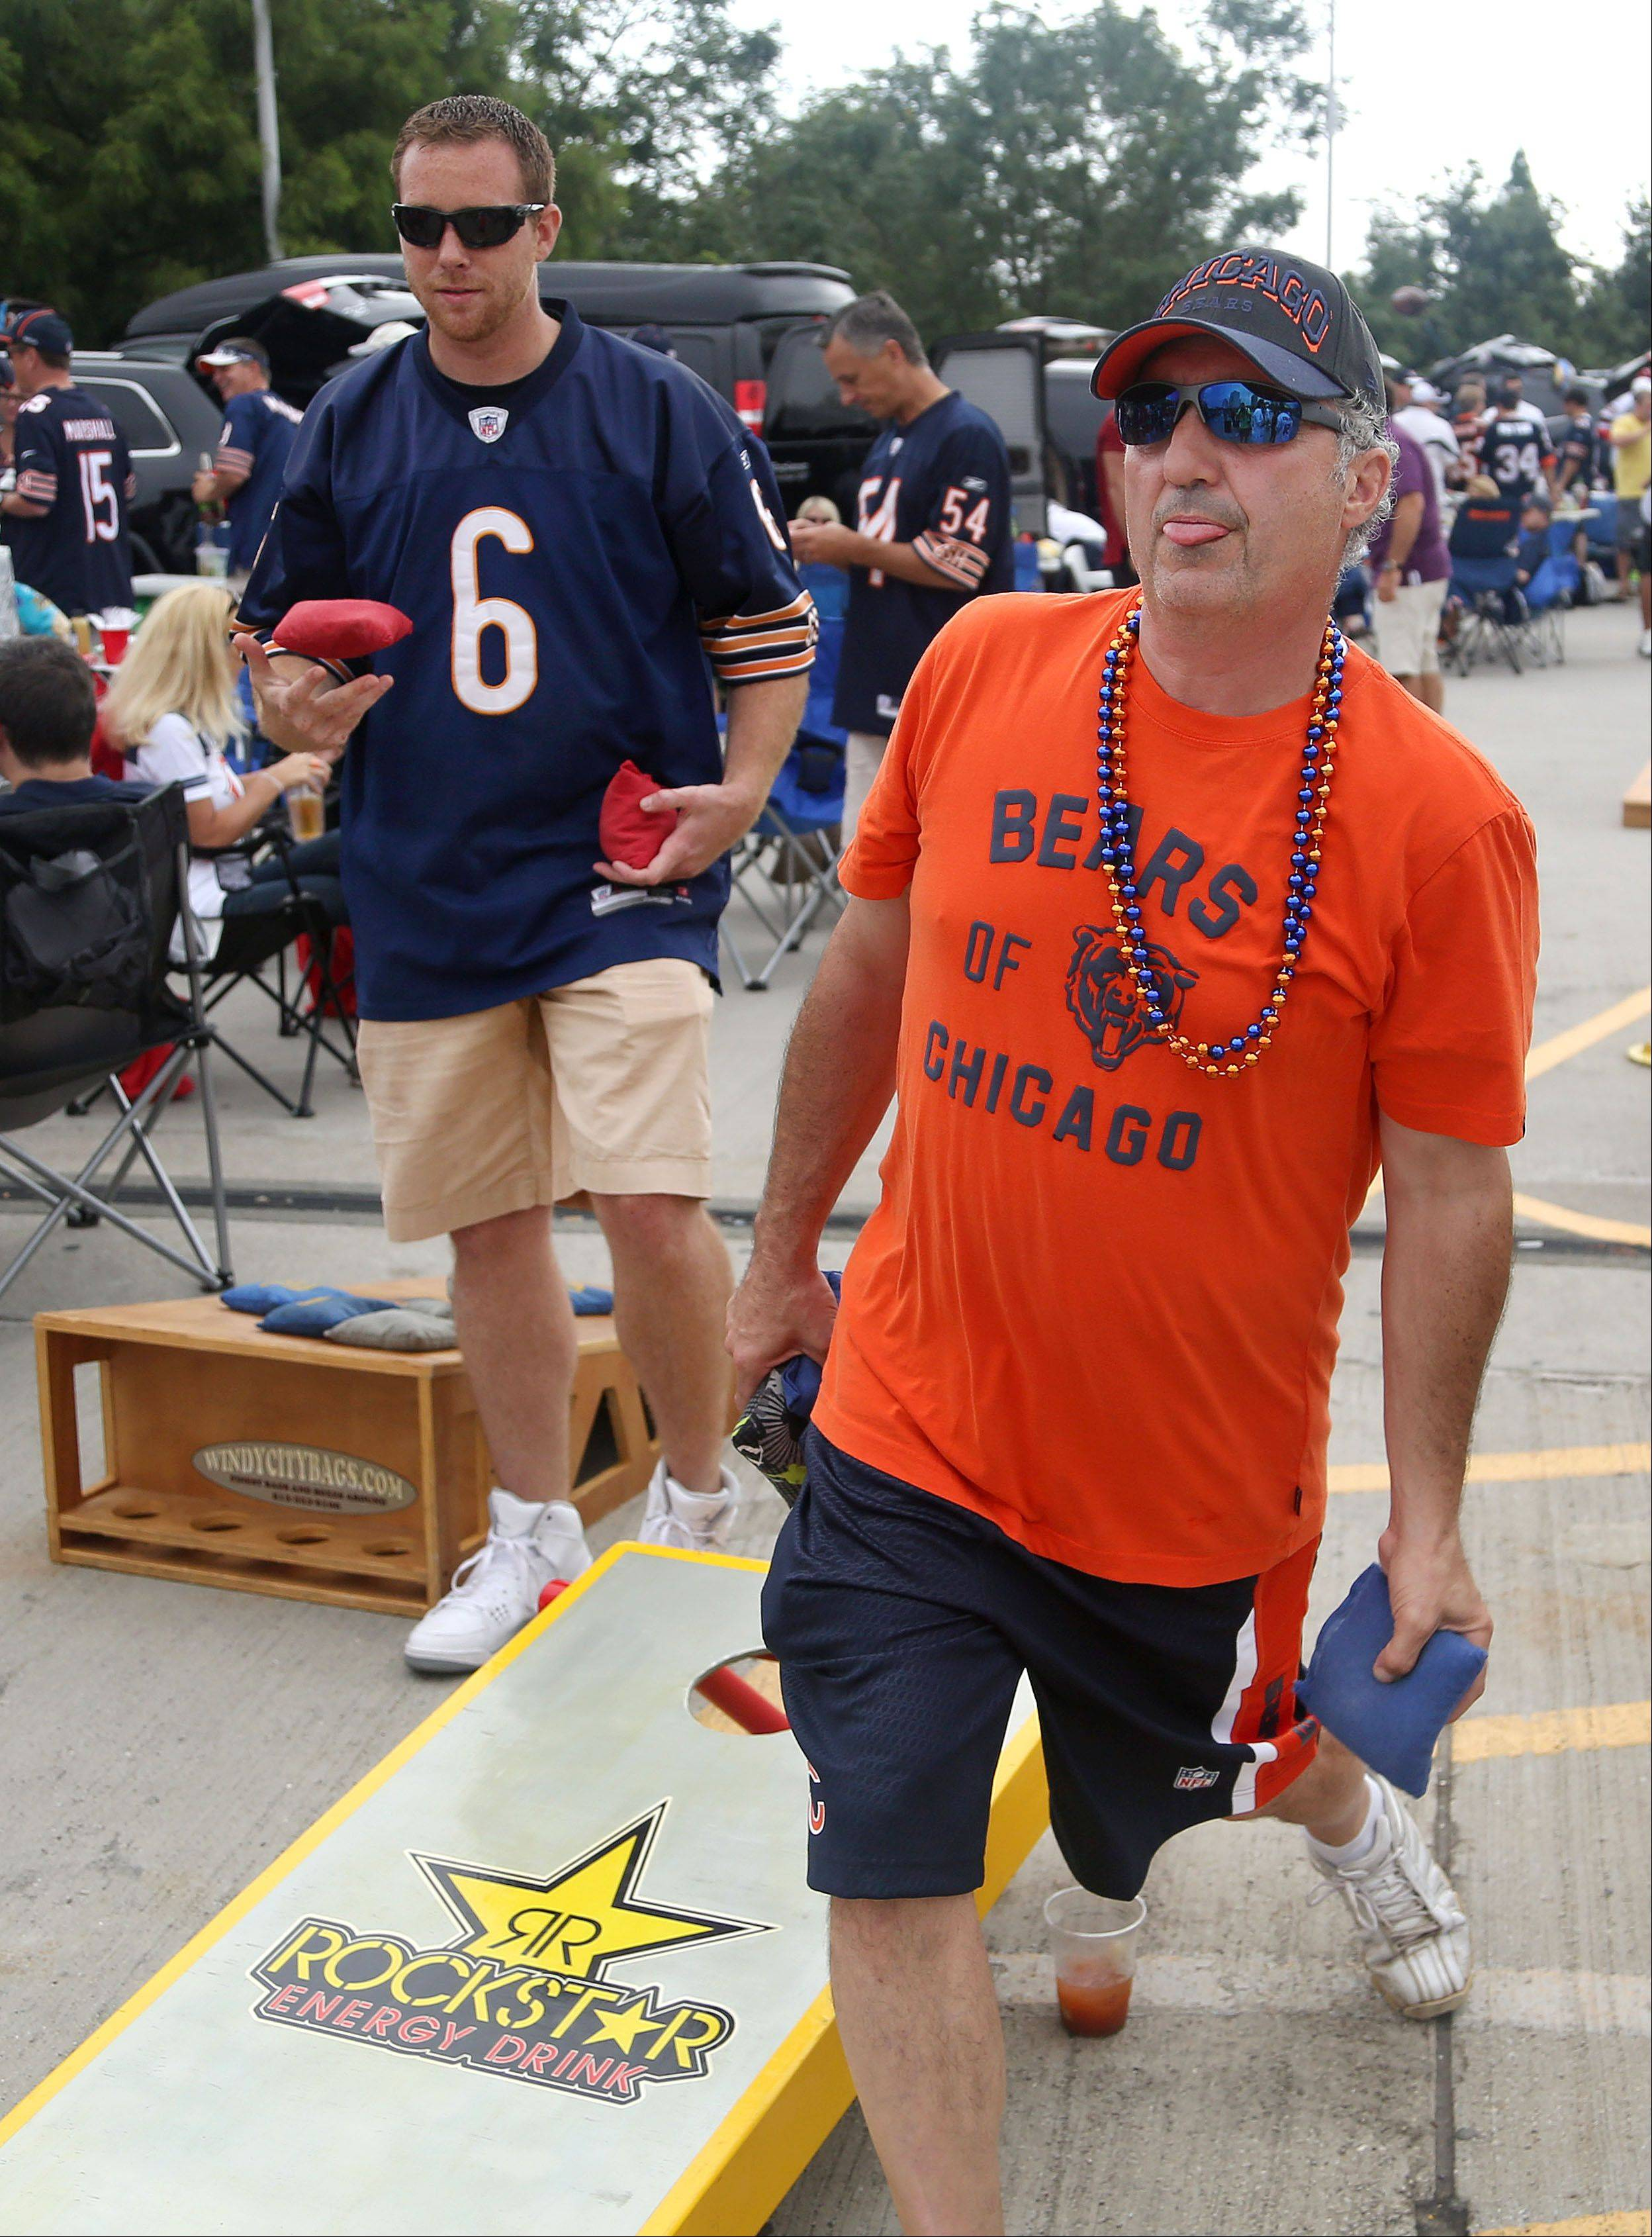 Steven Salidas of Lombard, right, and Casey Lewis of Lake Villa play baggo prior to the Bears opening day game against the Cincinnati Bengals Sunday at Soldier Field in Chicago